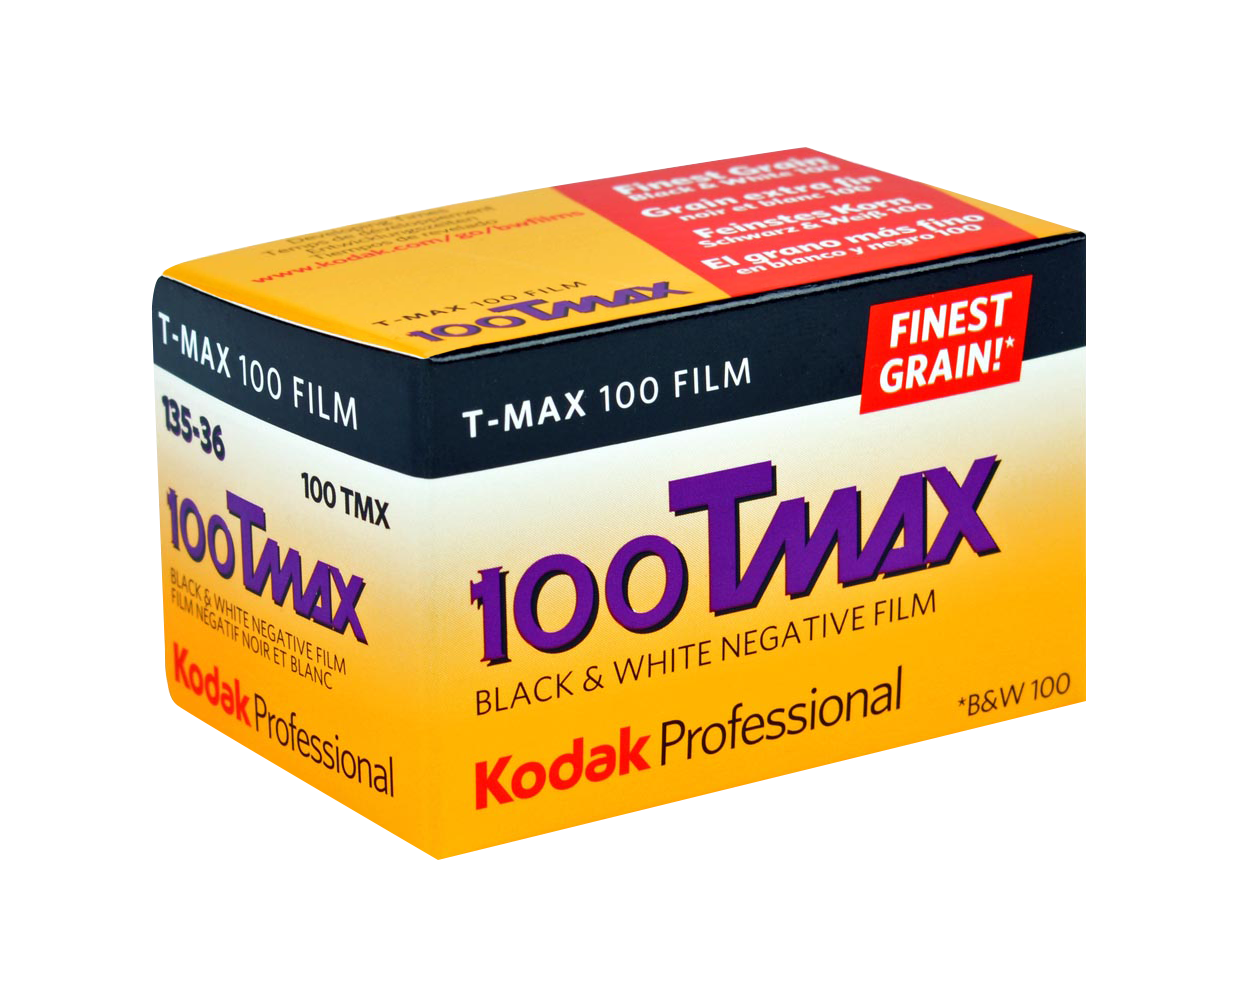 <h5>Kodak TMAX 100</h5> KODAK T-MAX 100 Professional Film is a continuous-tone panchromatic black-and-white negative film for general outdoor and indoor photography. It is especially useful for detailed subjects when you need maximum image quality. <br>Available formats:35mm, 120, 5x4